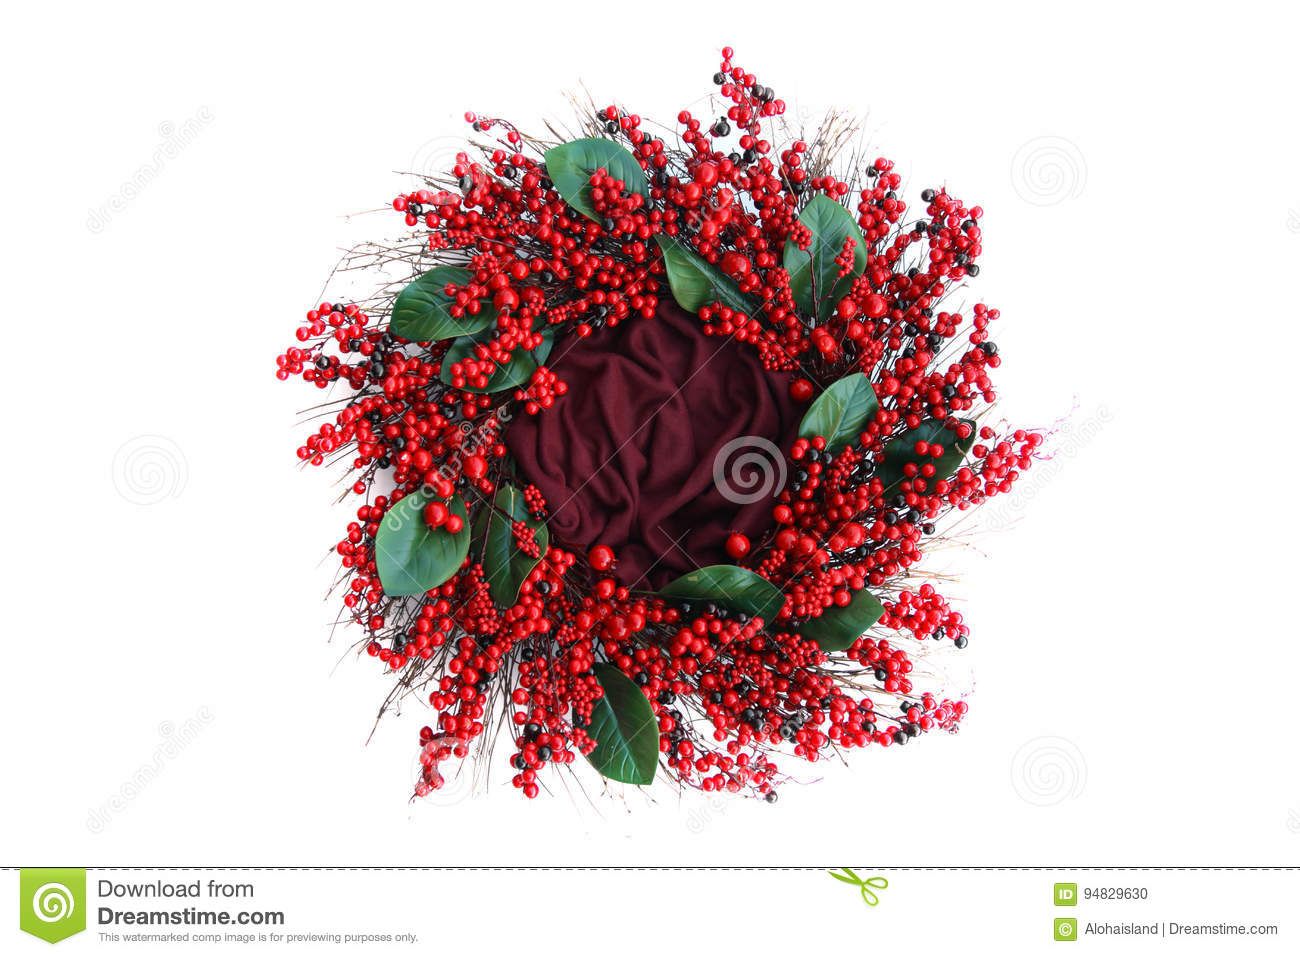 Digitalfotografie-Hintergrund roten Berry Holiday Wreath Isolated On-Weiß